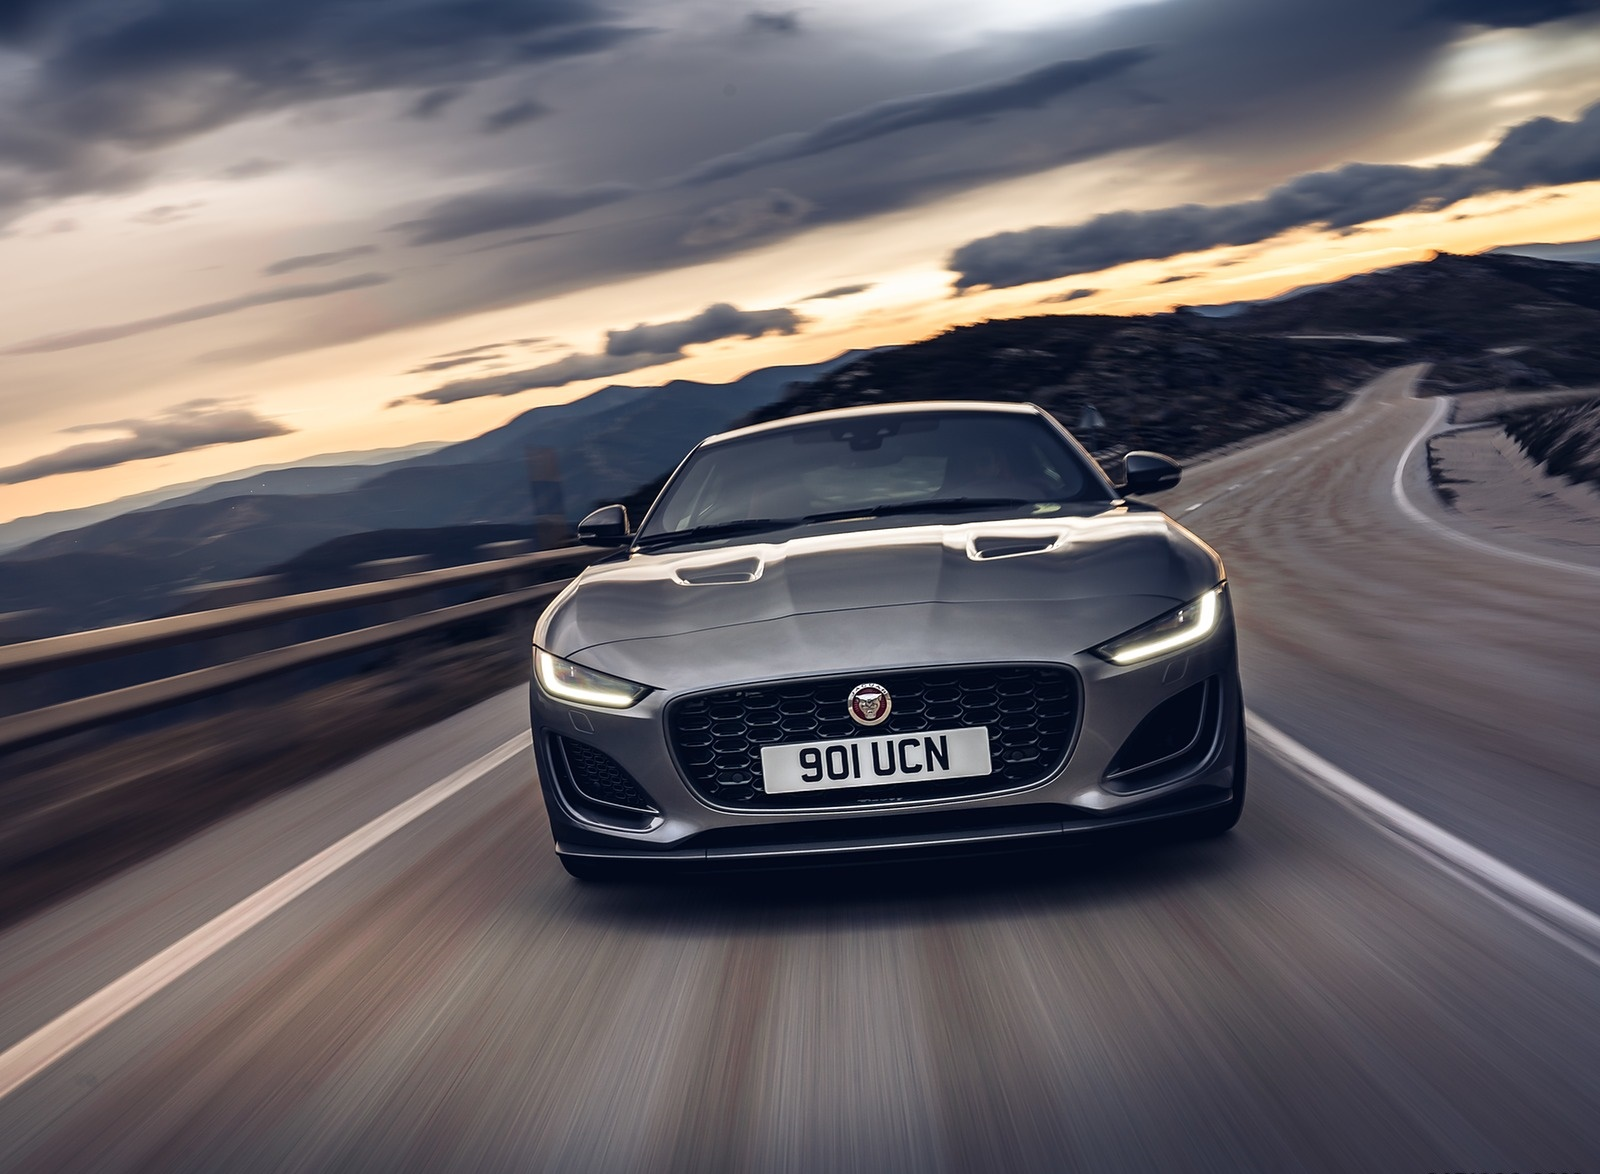 2021 Jaguar F-TYPE P300 Coupe RWD (Color: Eiger Grey) Front Wallpapers (6)